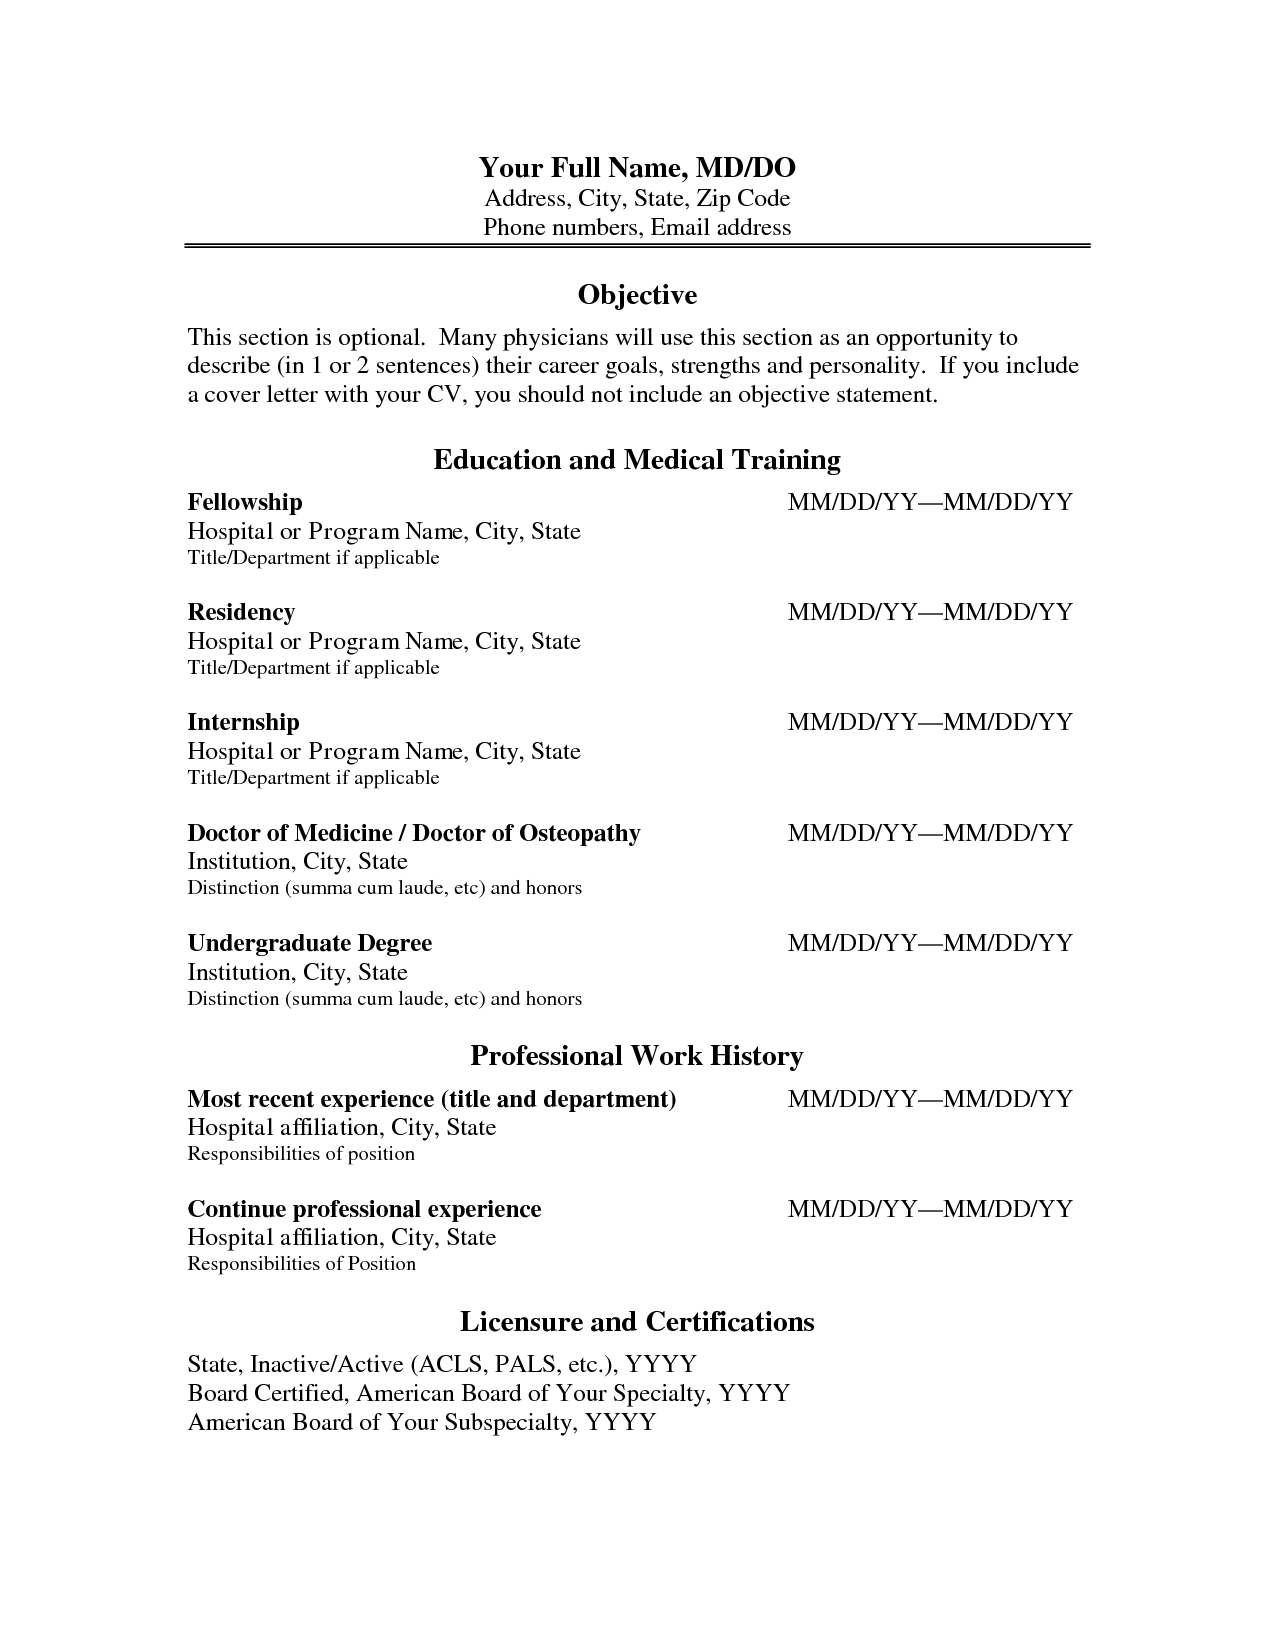 Cv Resume Builder Cv Format Physician Physician Assistant Resume And Curriculum